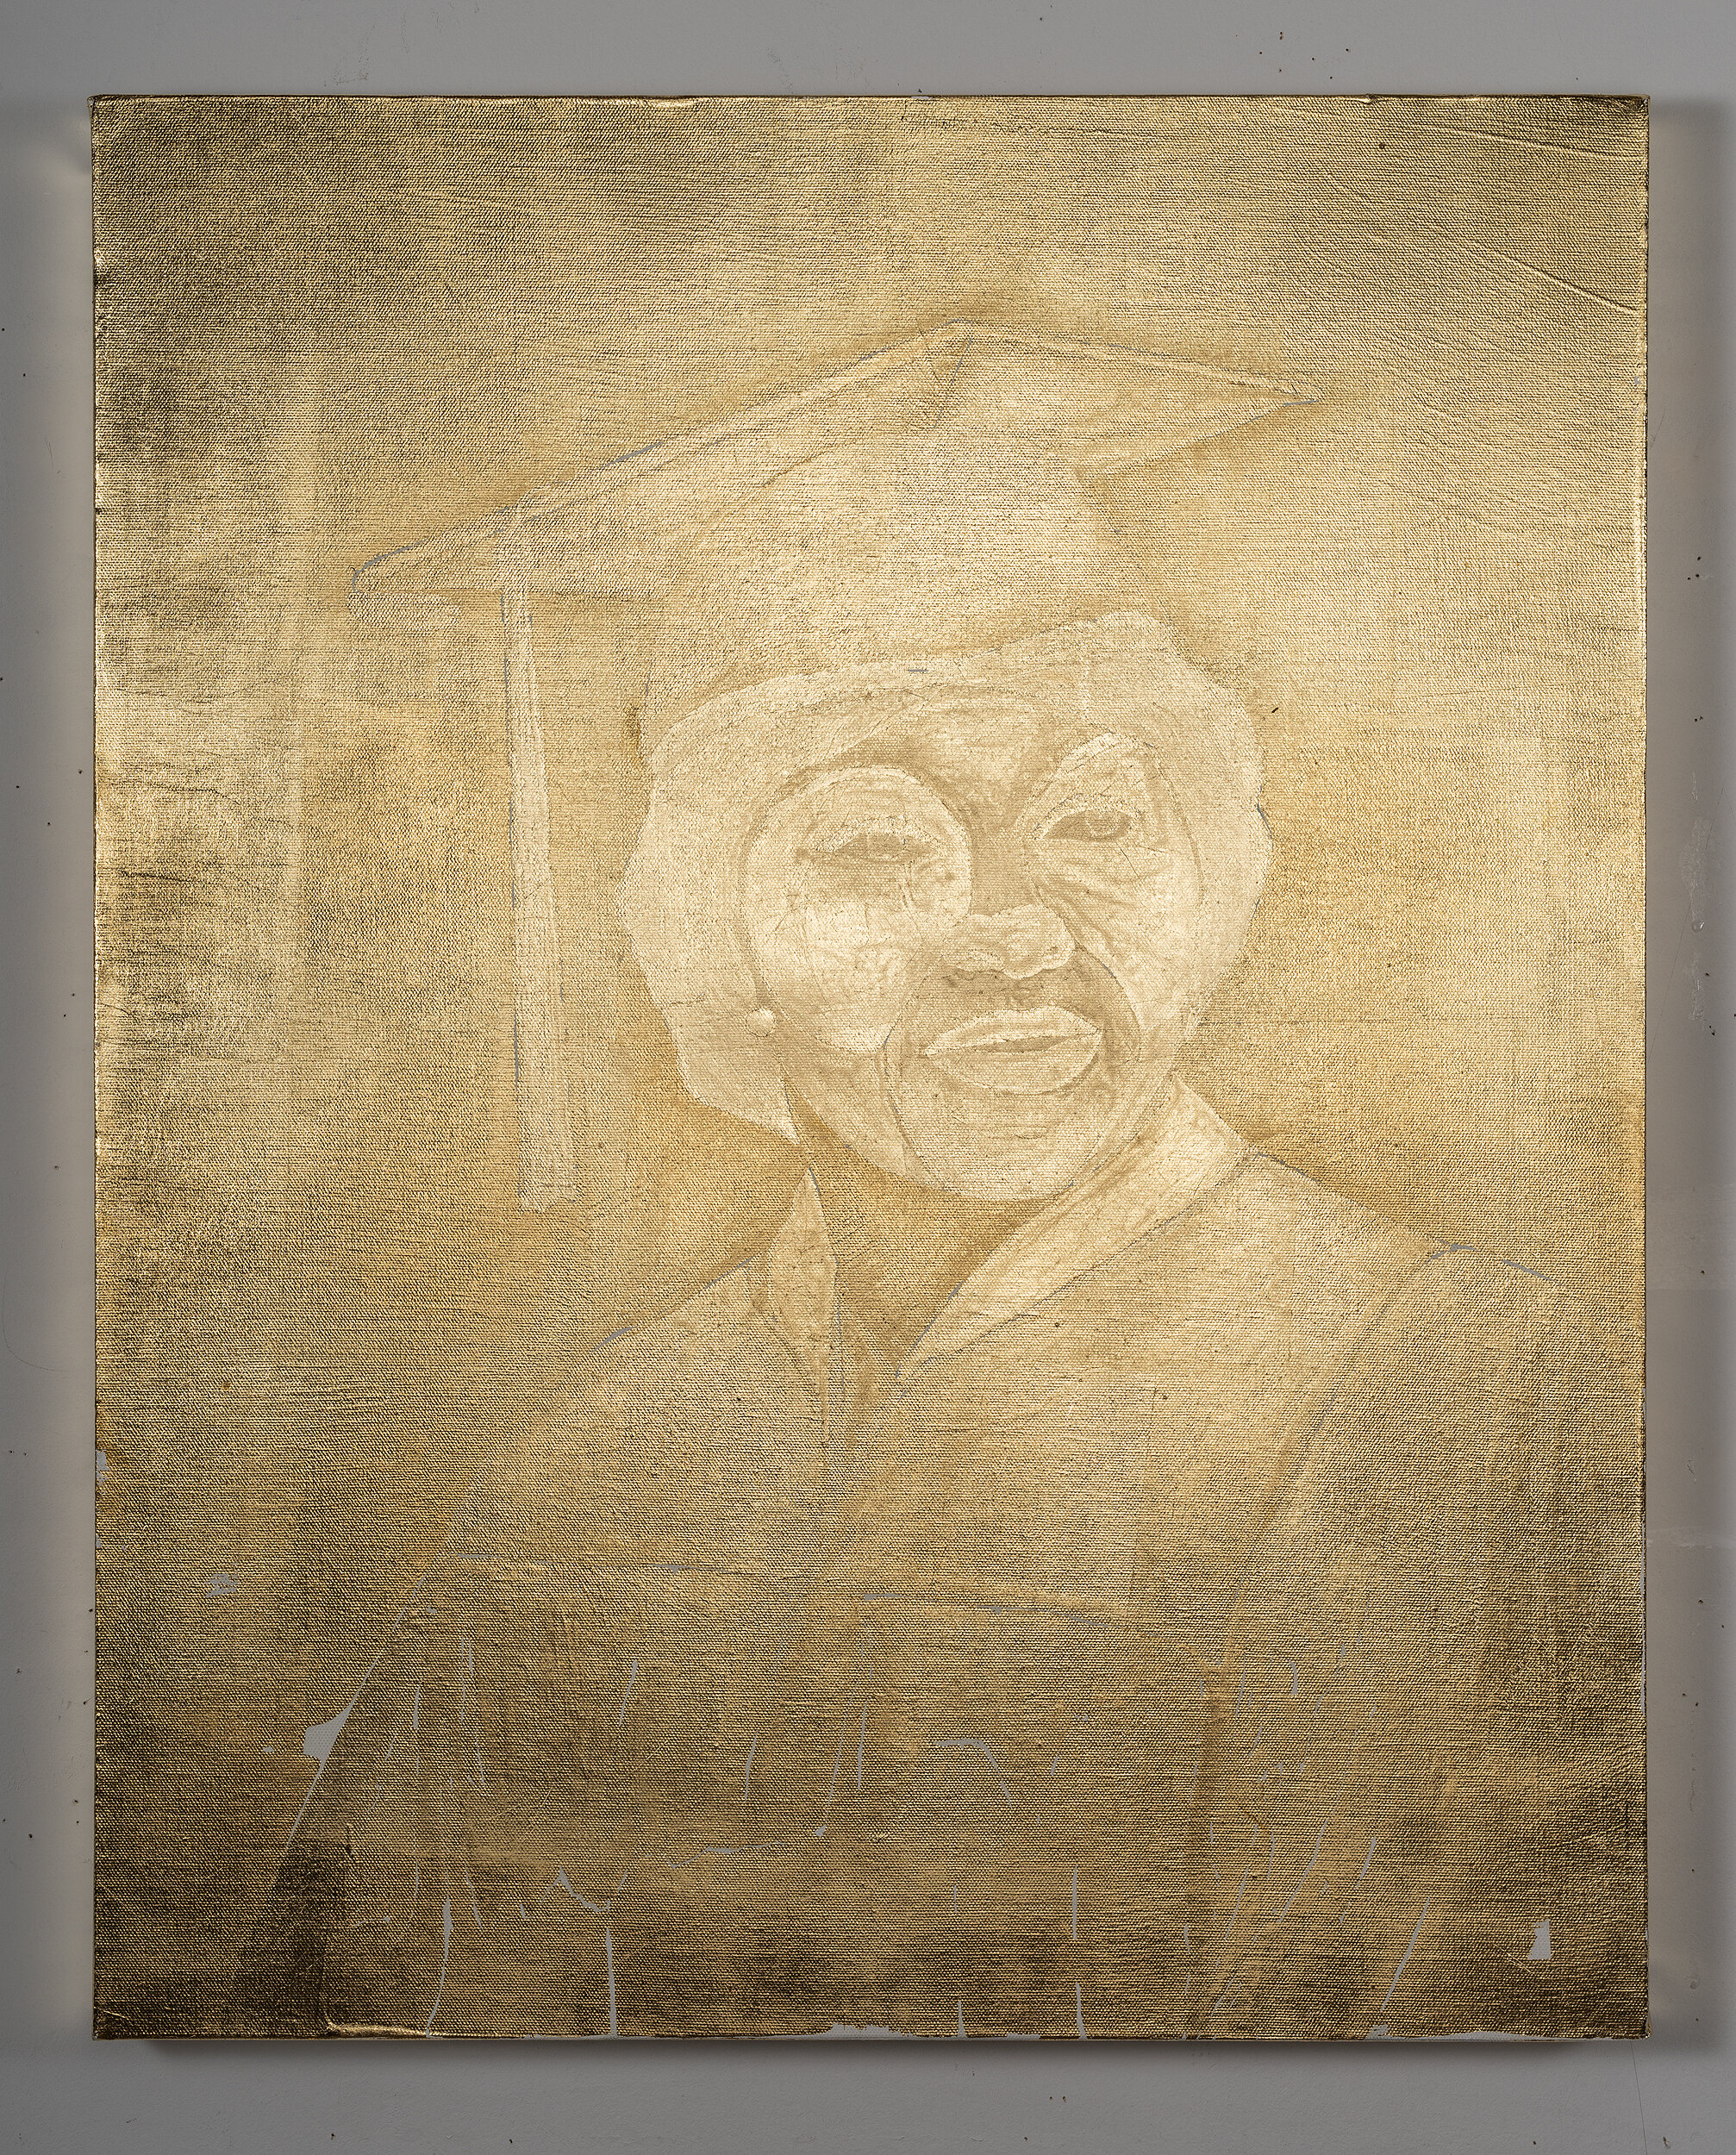 Untitled (Graduate),  2018, 36 x 24 inches, composition gold leaf on canvas